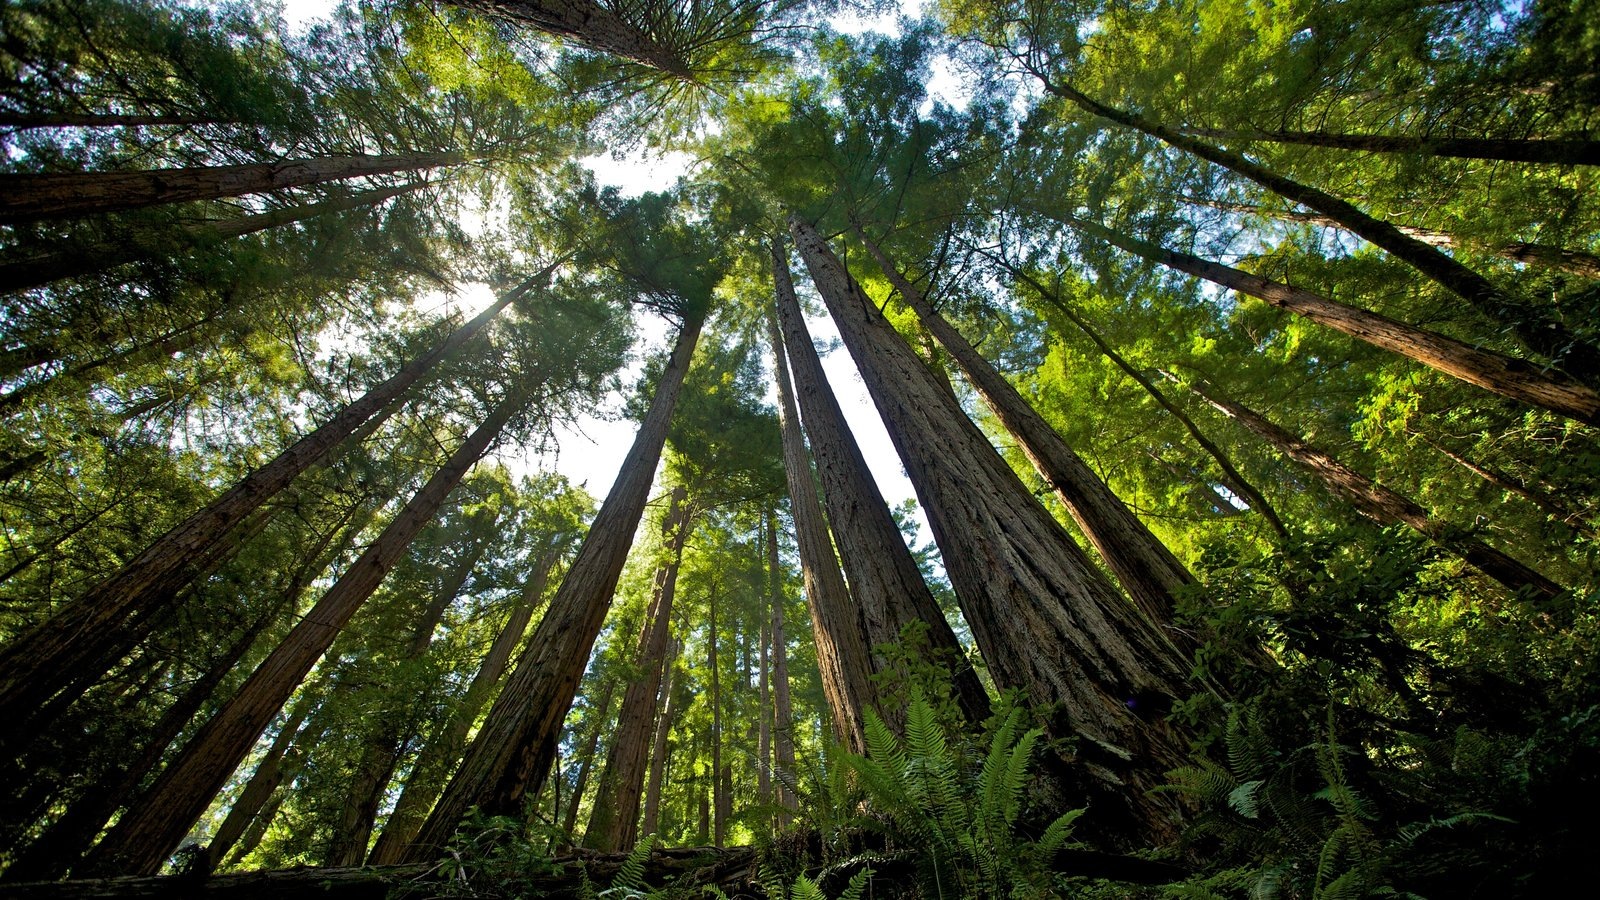 Muir Woods showing landscape views and forest scenes